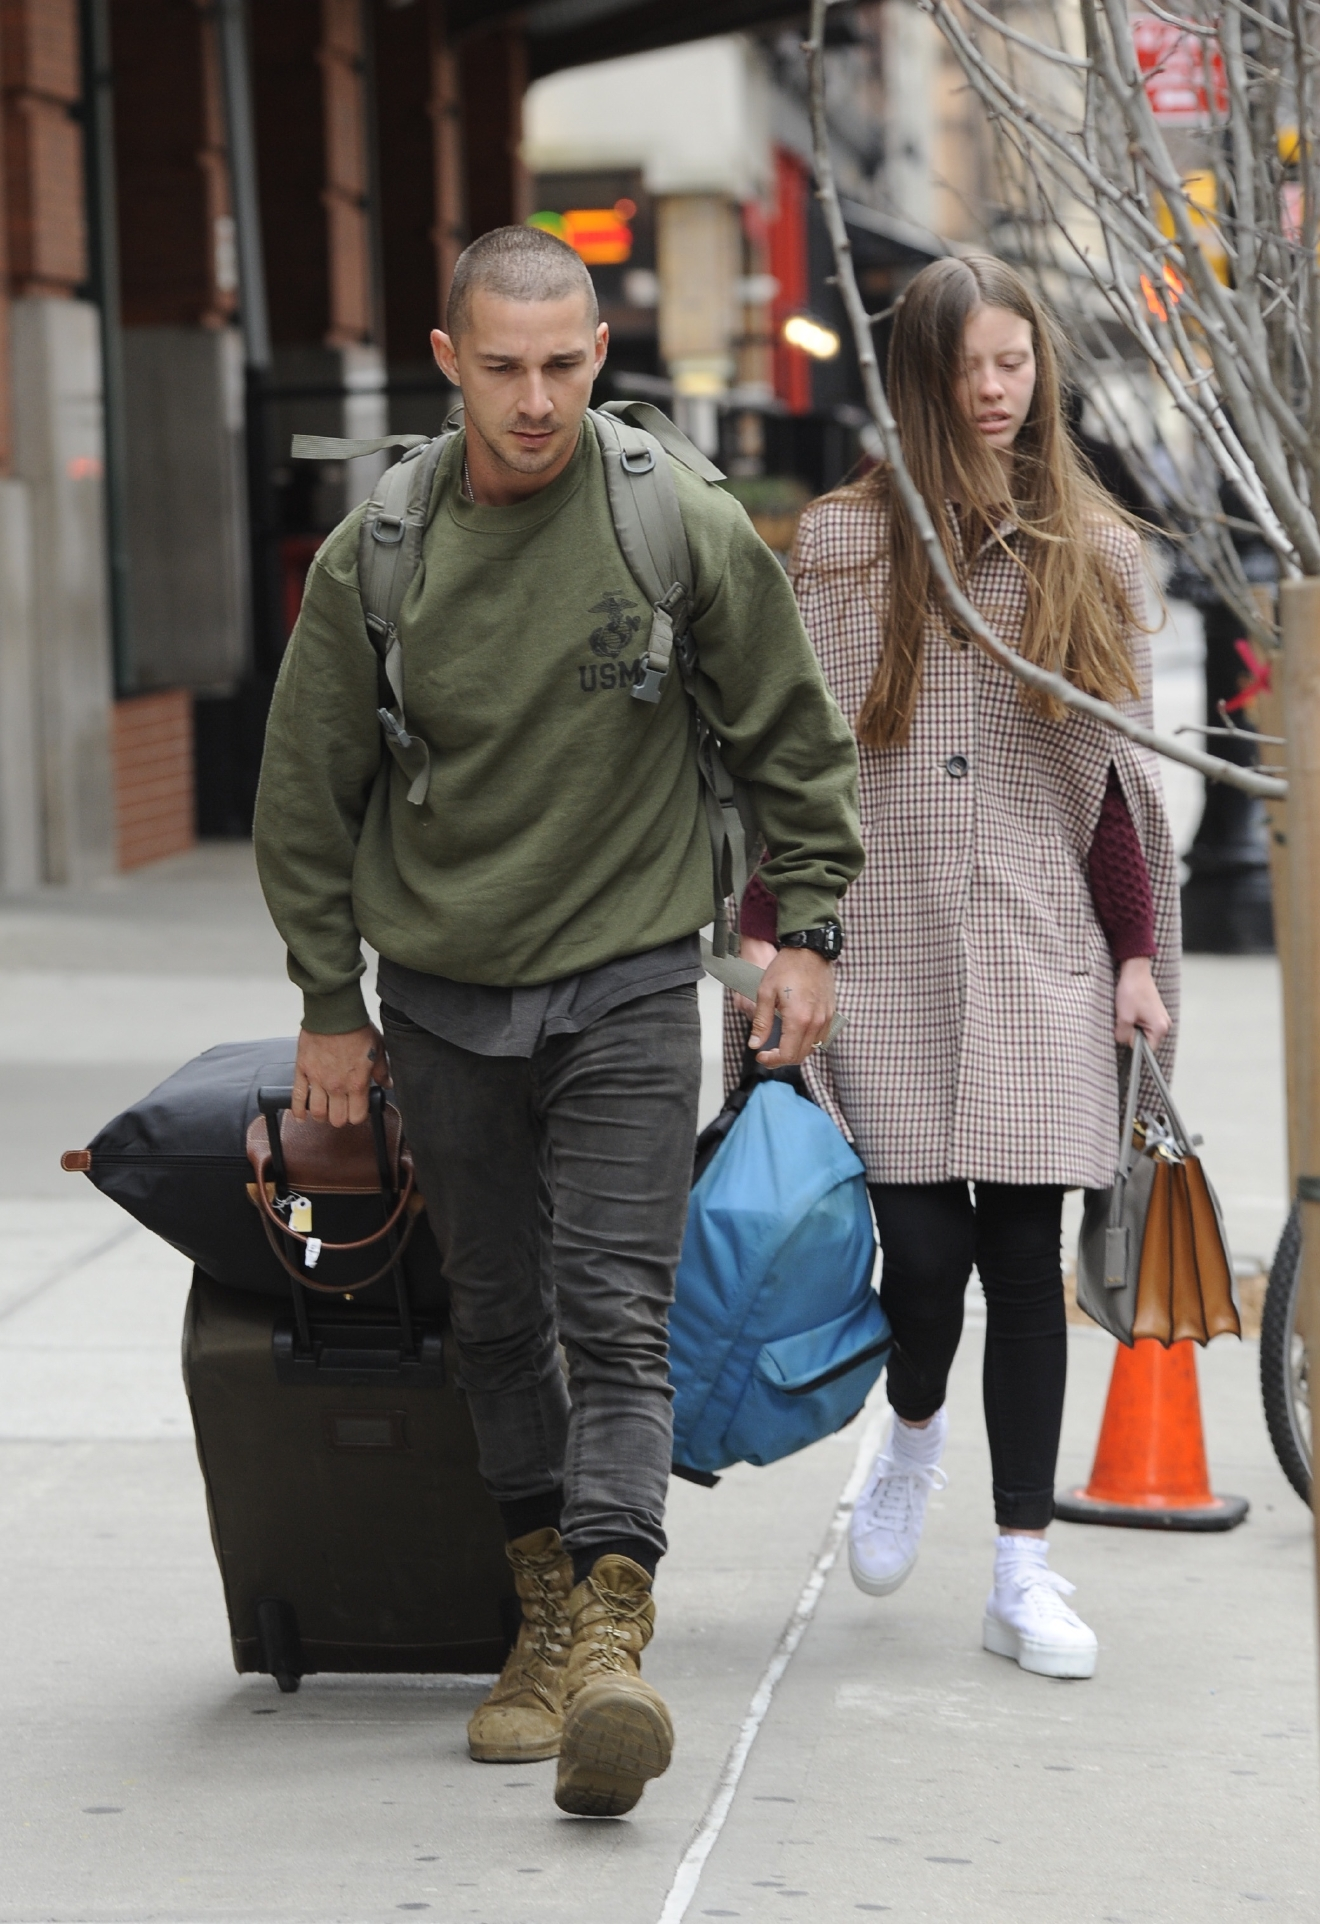 Shia LaBeouf and girlfriend Mia Goth leaving his hotel. Shia seen sporting short cropped hair and scruffy clothing as he wheels his luggage out.  Featuring: Shia LaBeouf,Mia Goth Where: Manhattan, New York, United States When: 25 Nov 2014 Credit: TNYF/WENN.com